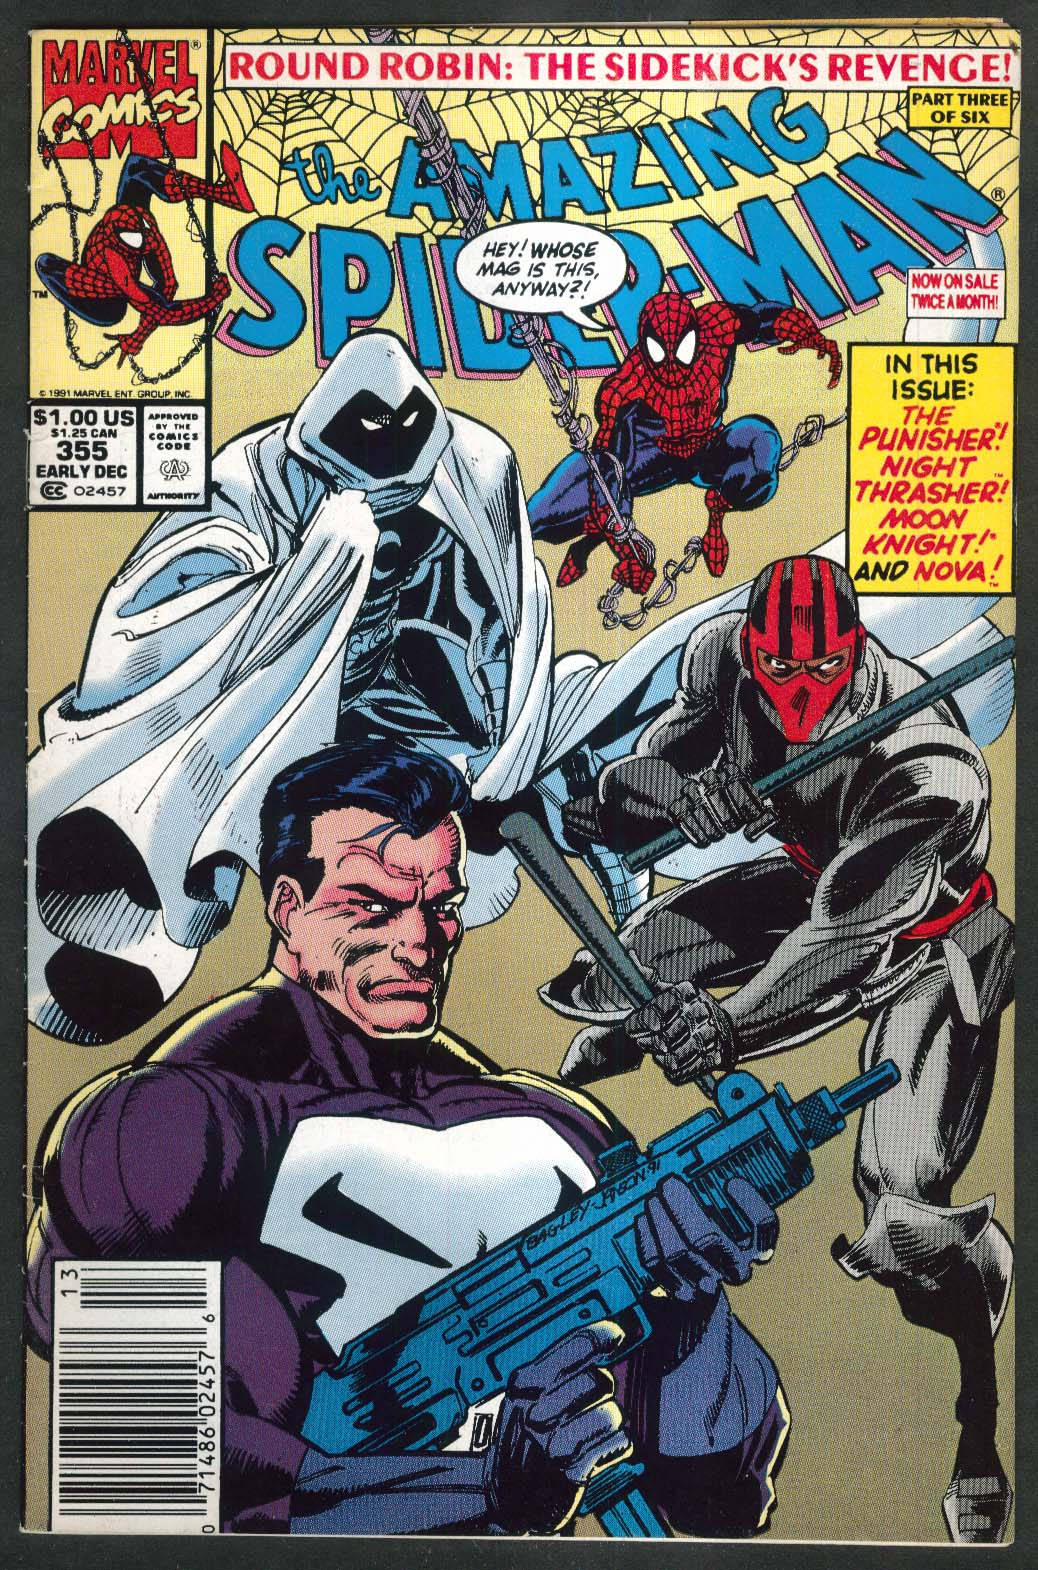 AMAZING SPIDER-MAN #355 Marvel comic book 12 1991 Punisher